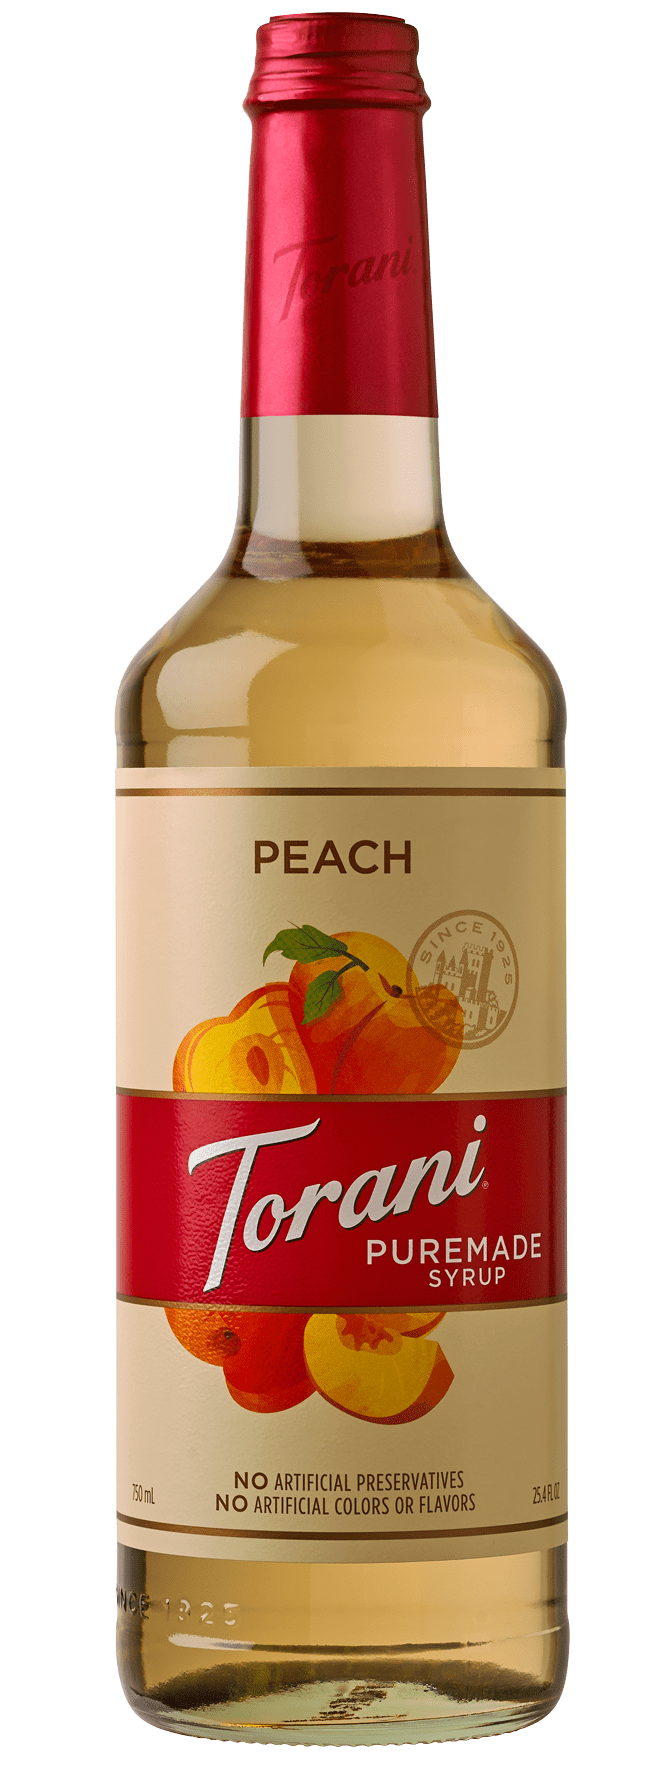 Puremade Peach Syrup image